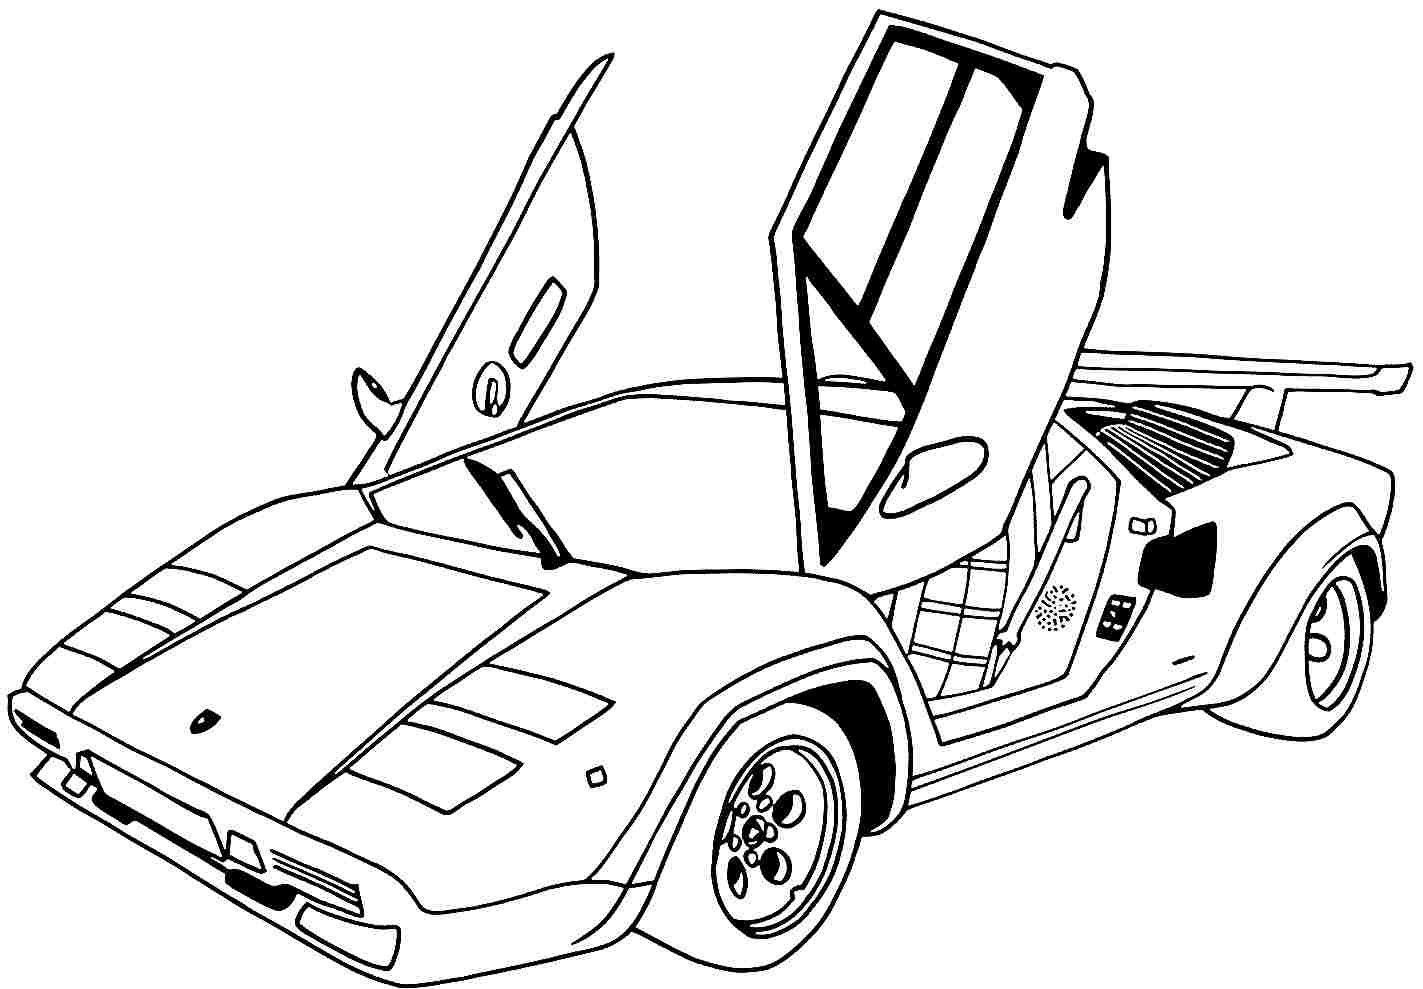 Formula 20One 20clipart 20kid 20car moreover Car Coloring Pages as well Lamborghini Gallardo Spyder Lp560 4 in addition Arrows A4 F1 Classic Race Car Coloring Page besides Cars. on aston martin race car